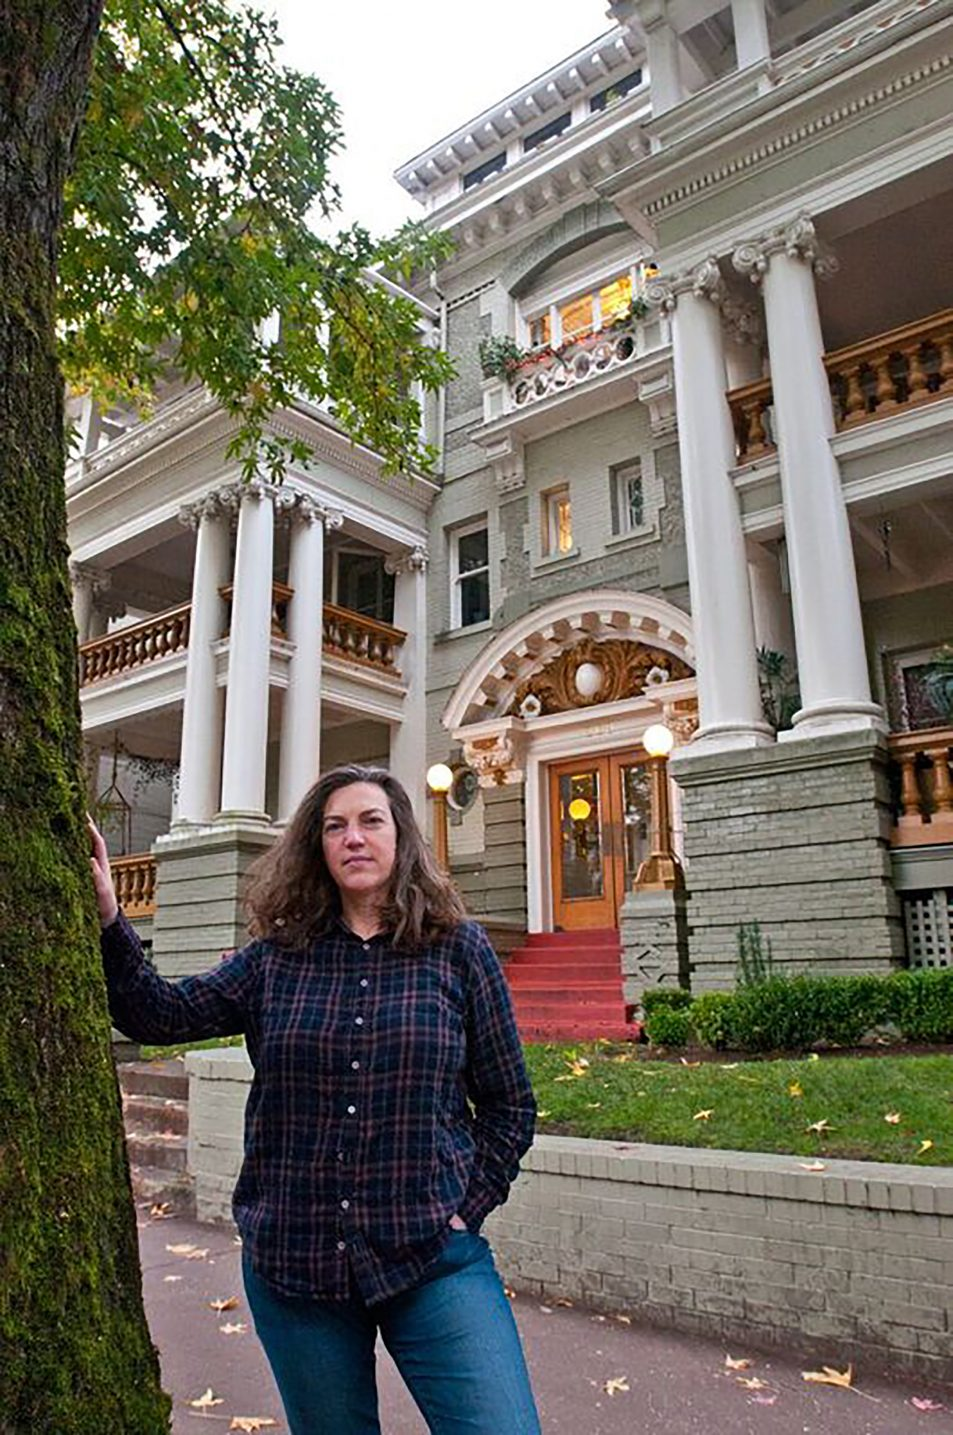 Pippa Arend loves her historic landmark apartment building on Northwest 23rd Avenue and wants to spend the rest of her life there. But if the city adopts proposed seismic upgrade requirements, she fears the building will have to be demolished.